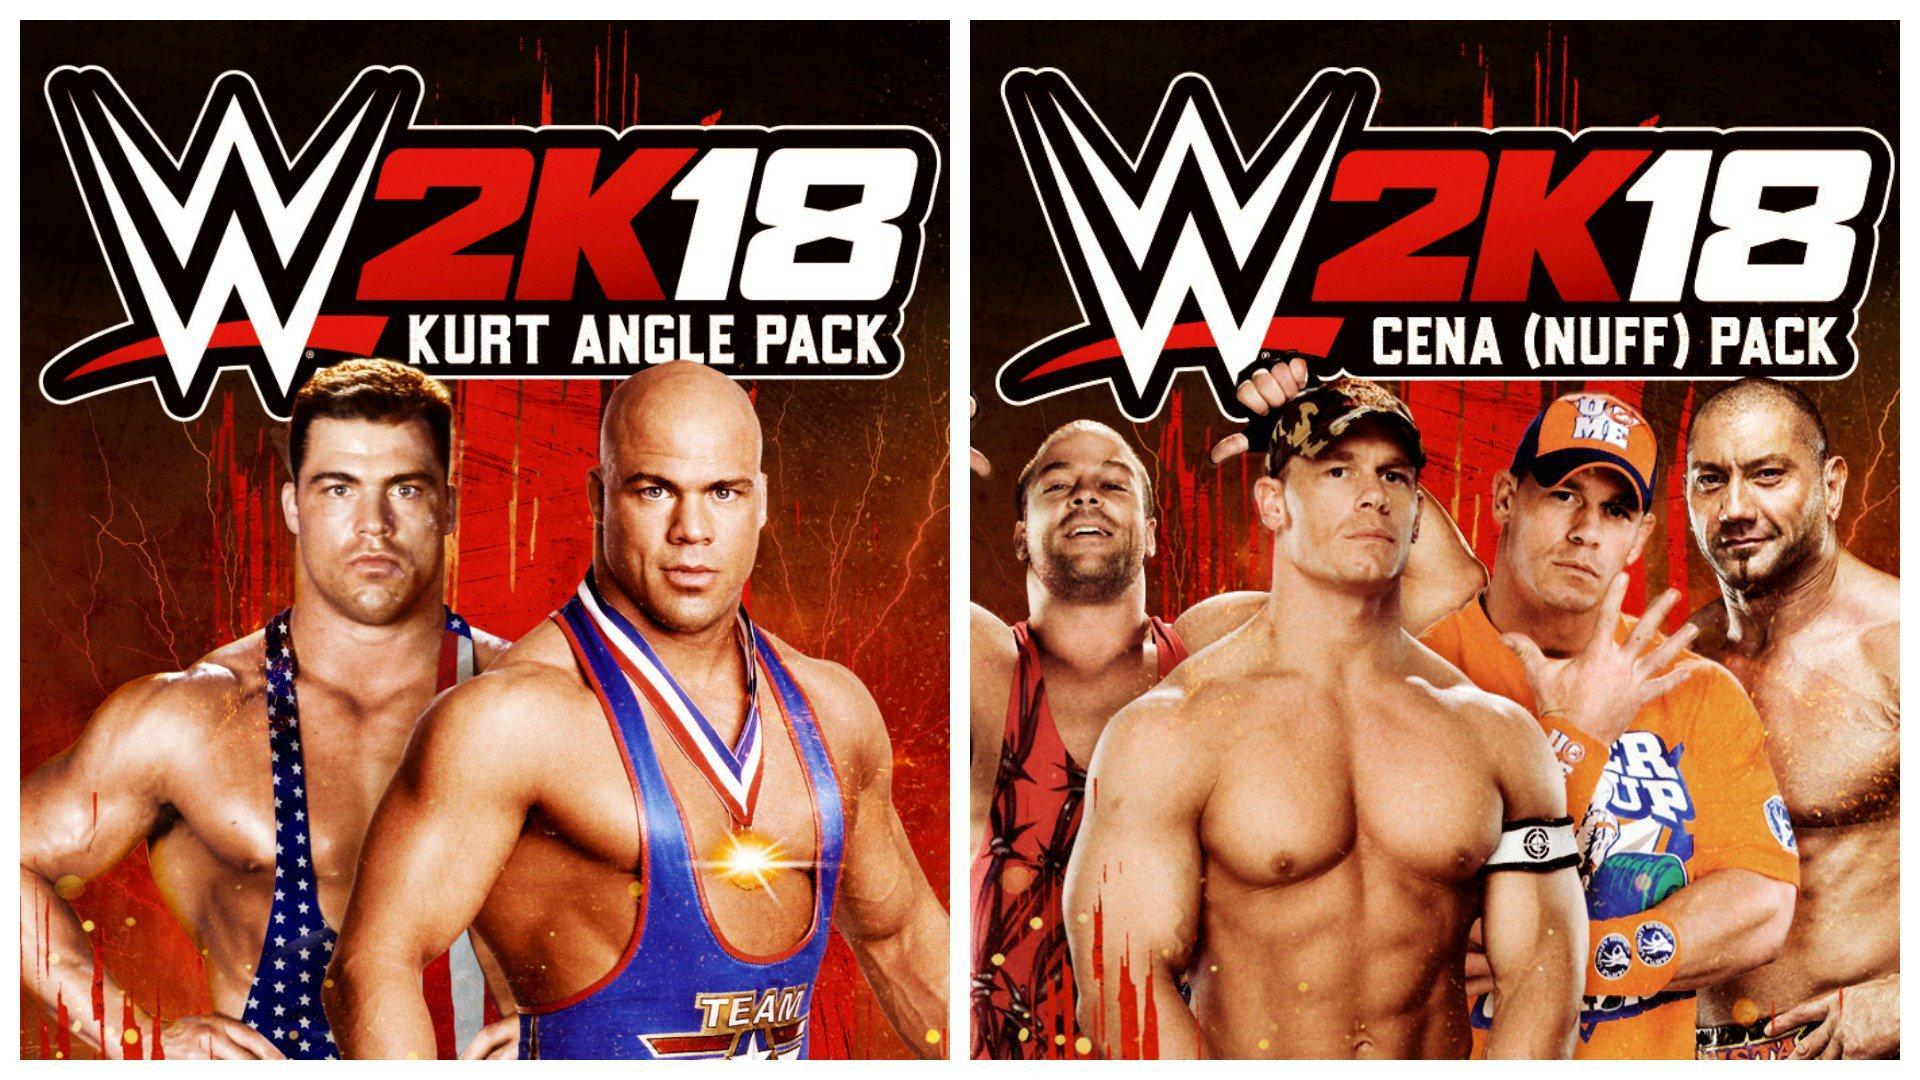 WWE 2K18: Kurt Angle and Cena (Nuff) DLC Packs Now Available For All To Buy